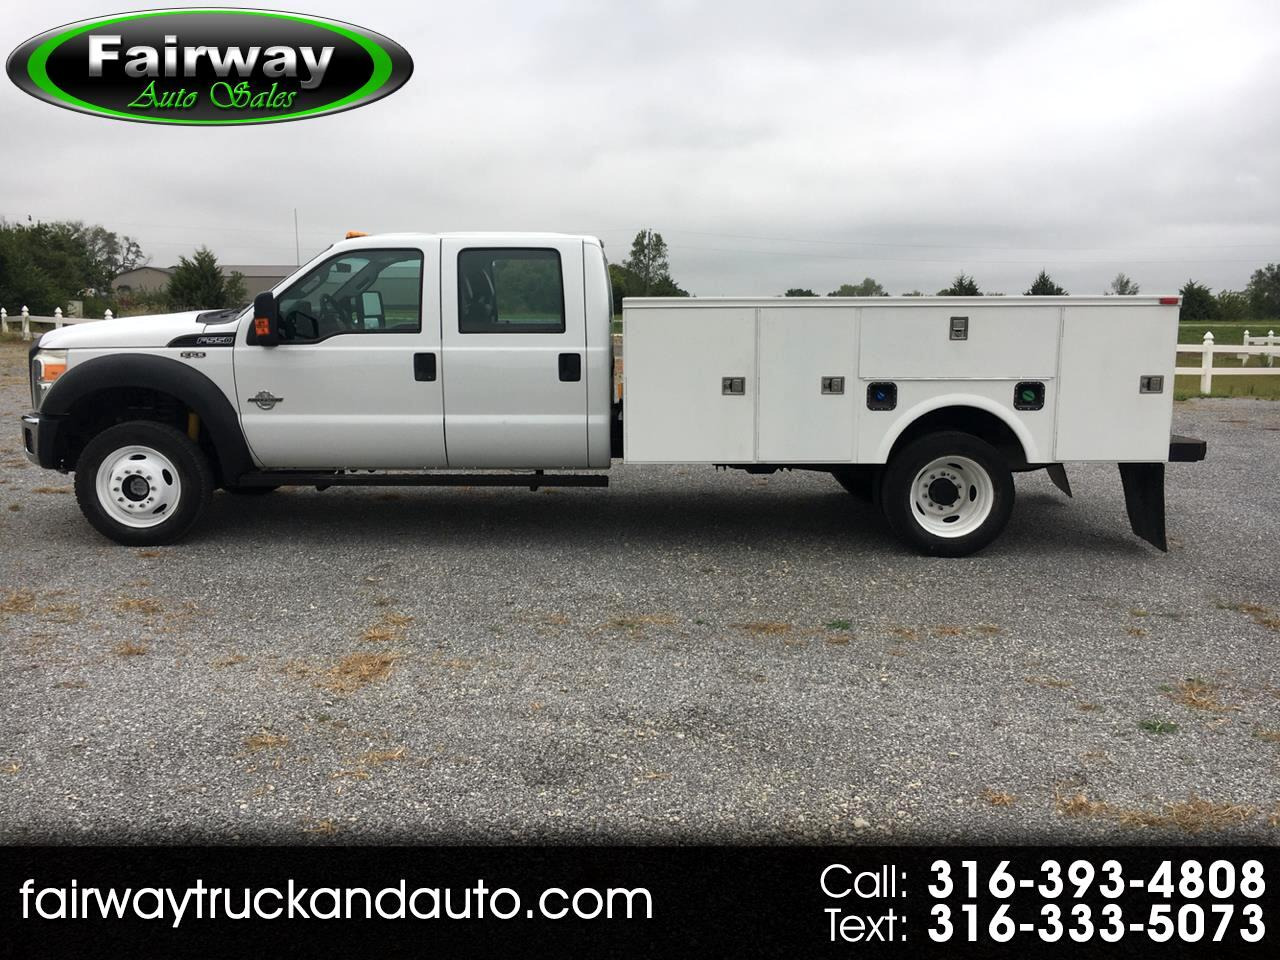 Ford F-550 Super Duty Crew Cab 4WD DRW 2012